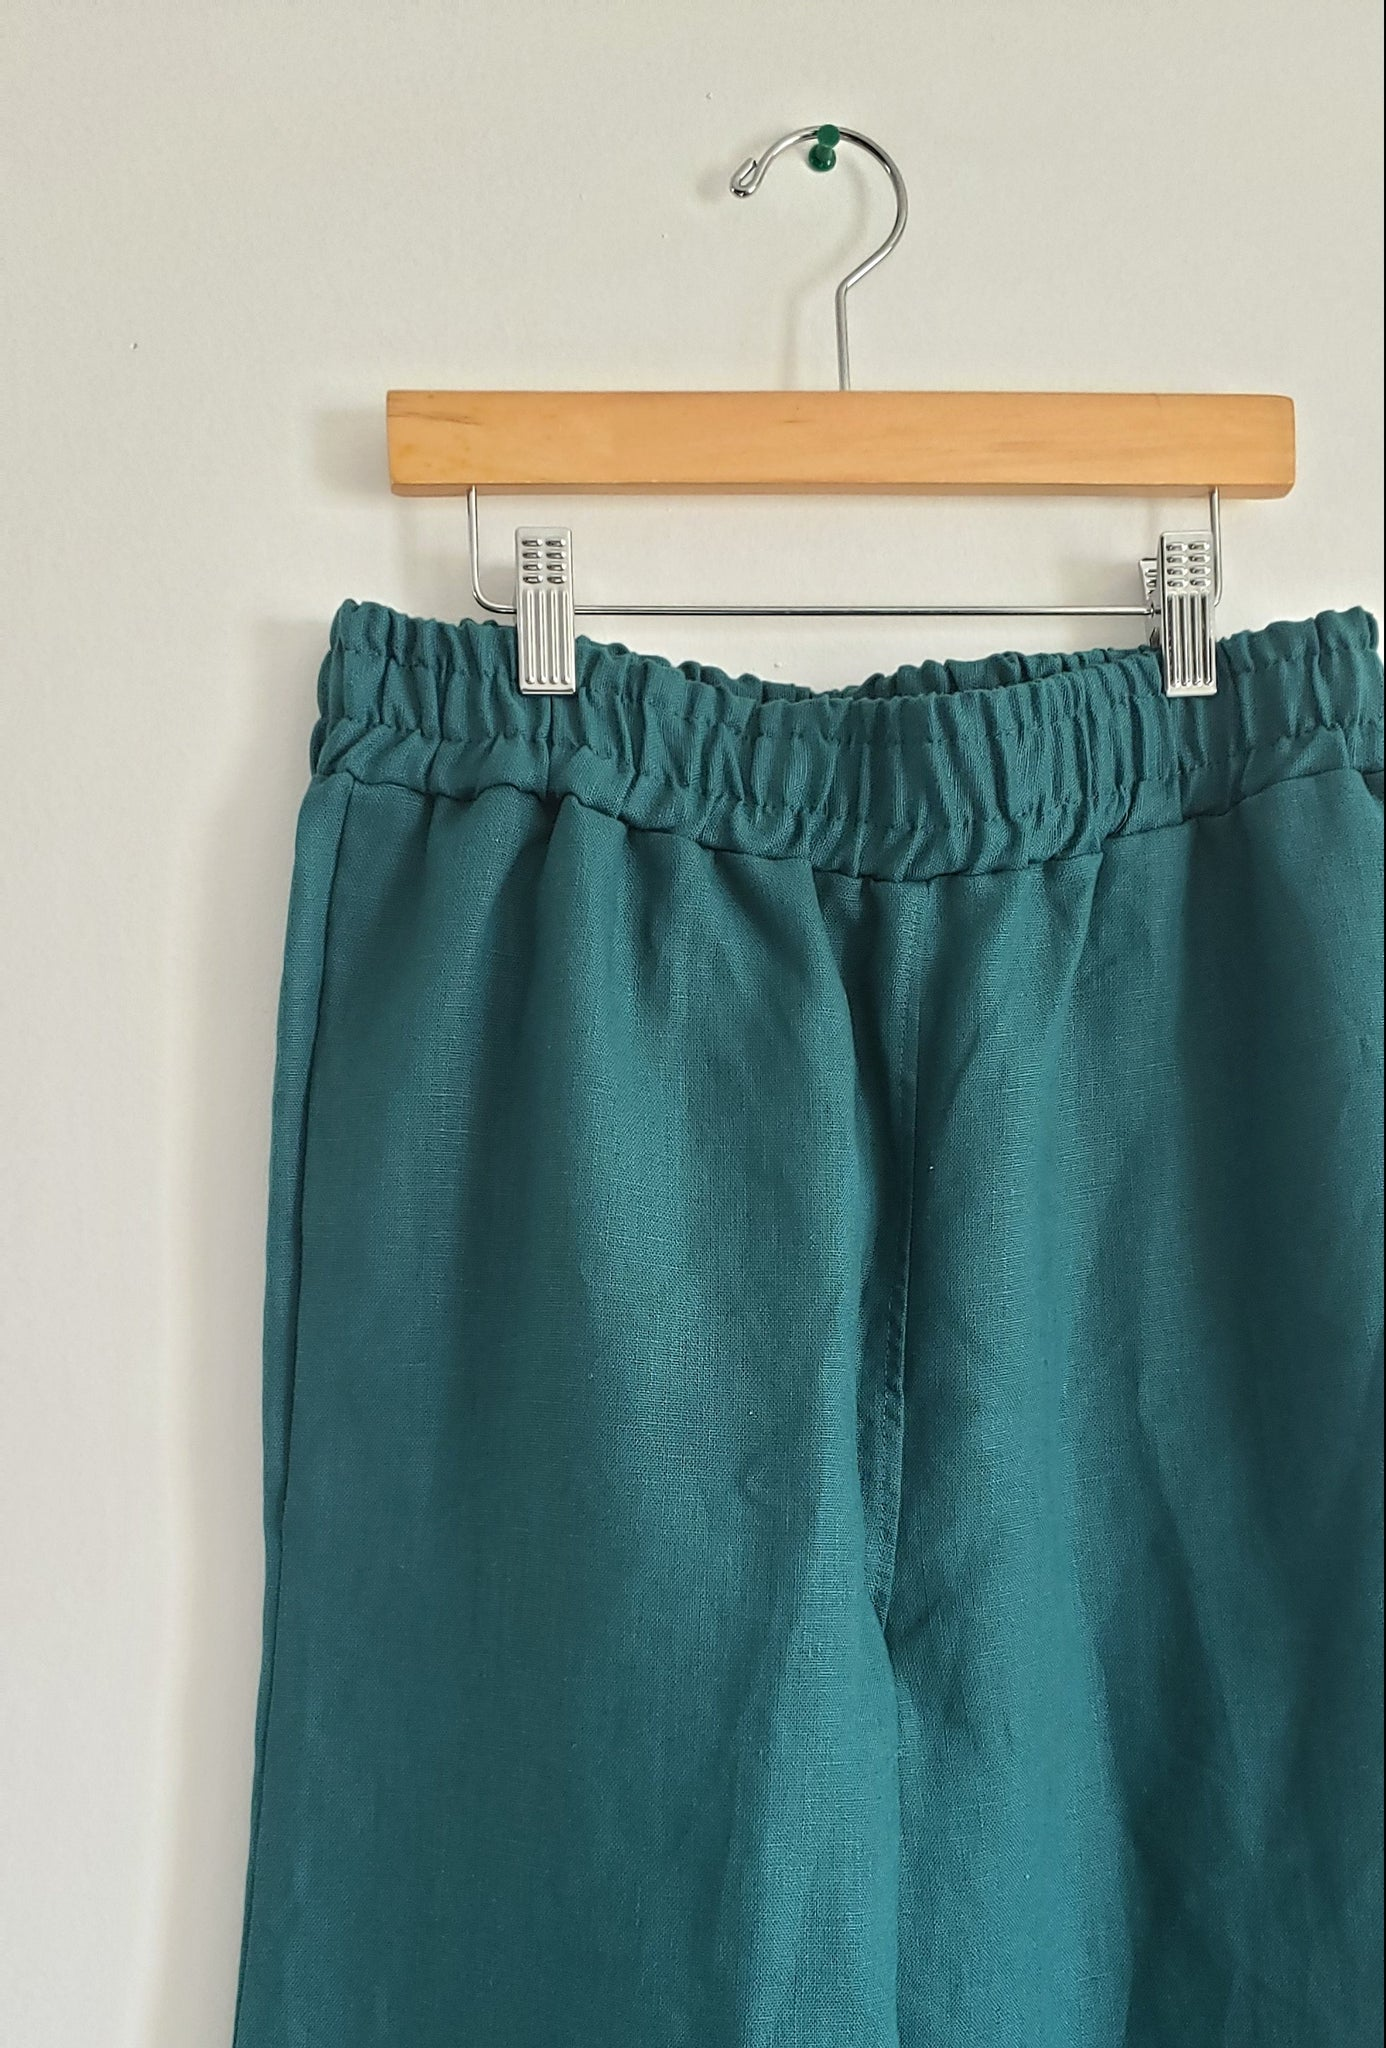 close up of teal green linen elastic waist pants hanging against a white wall